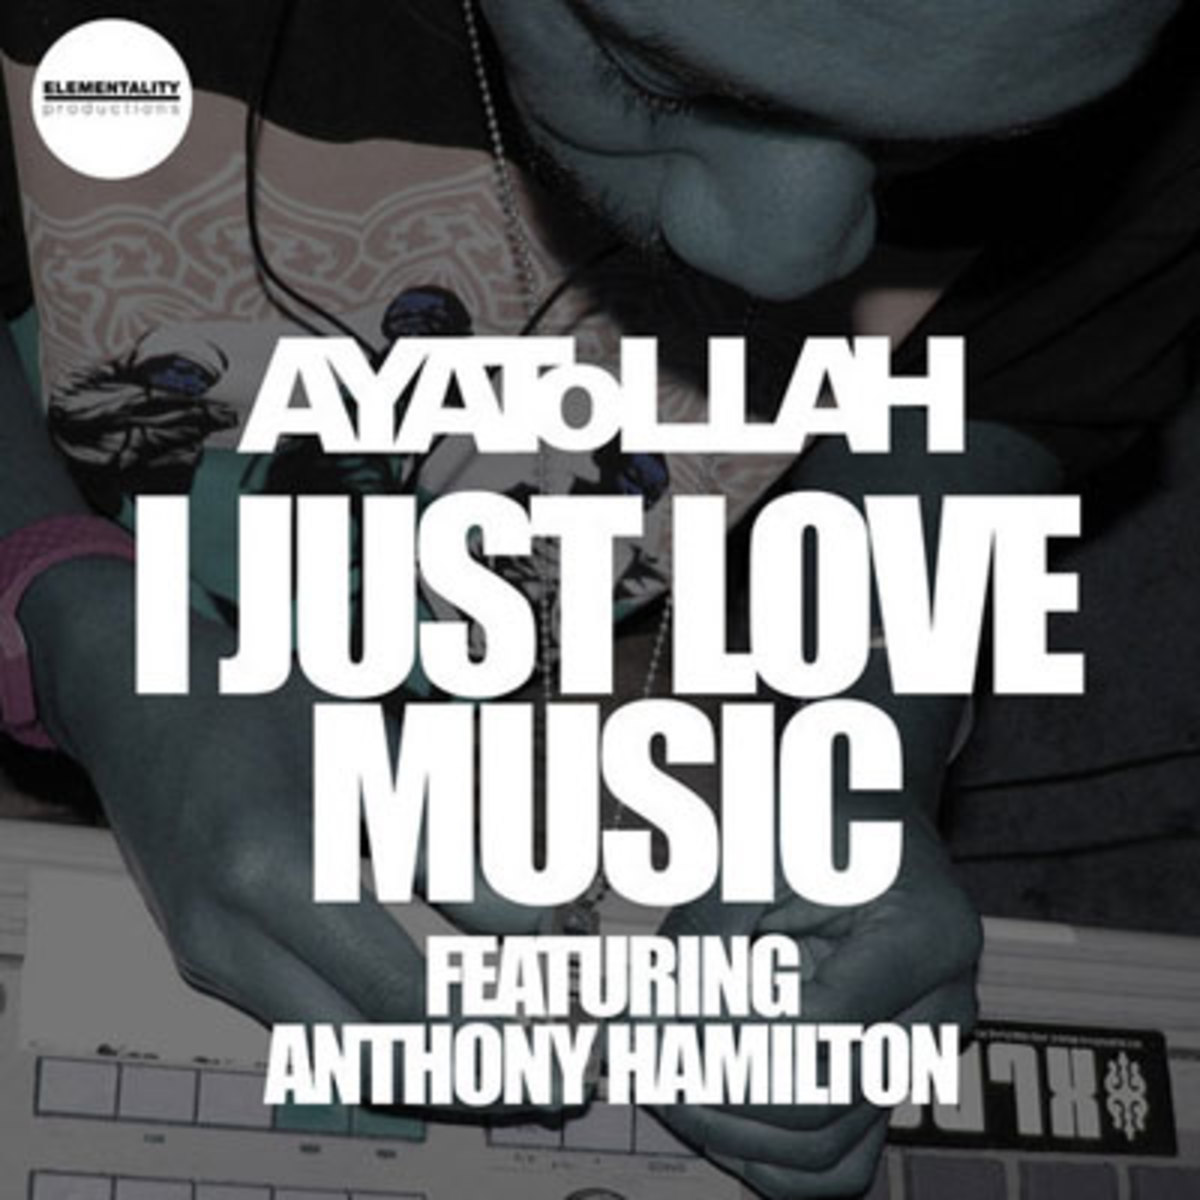 ayatollah-lovemusic.jpg